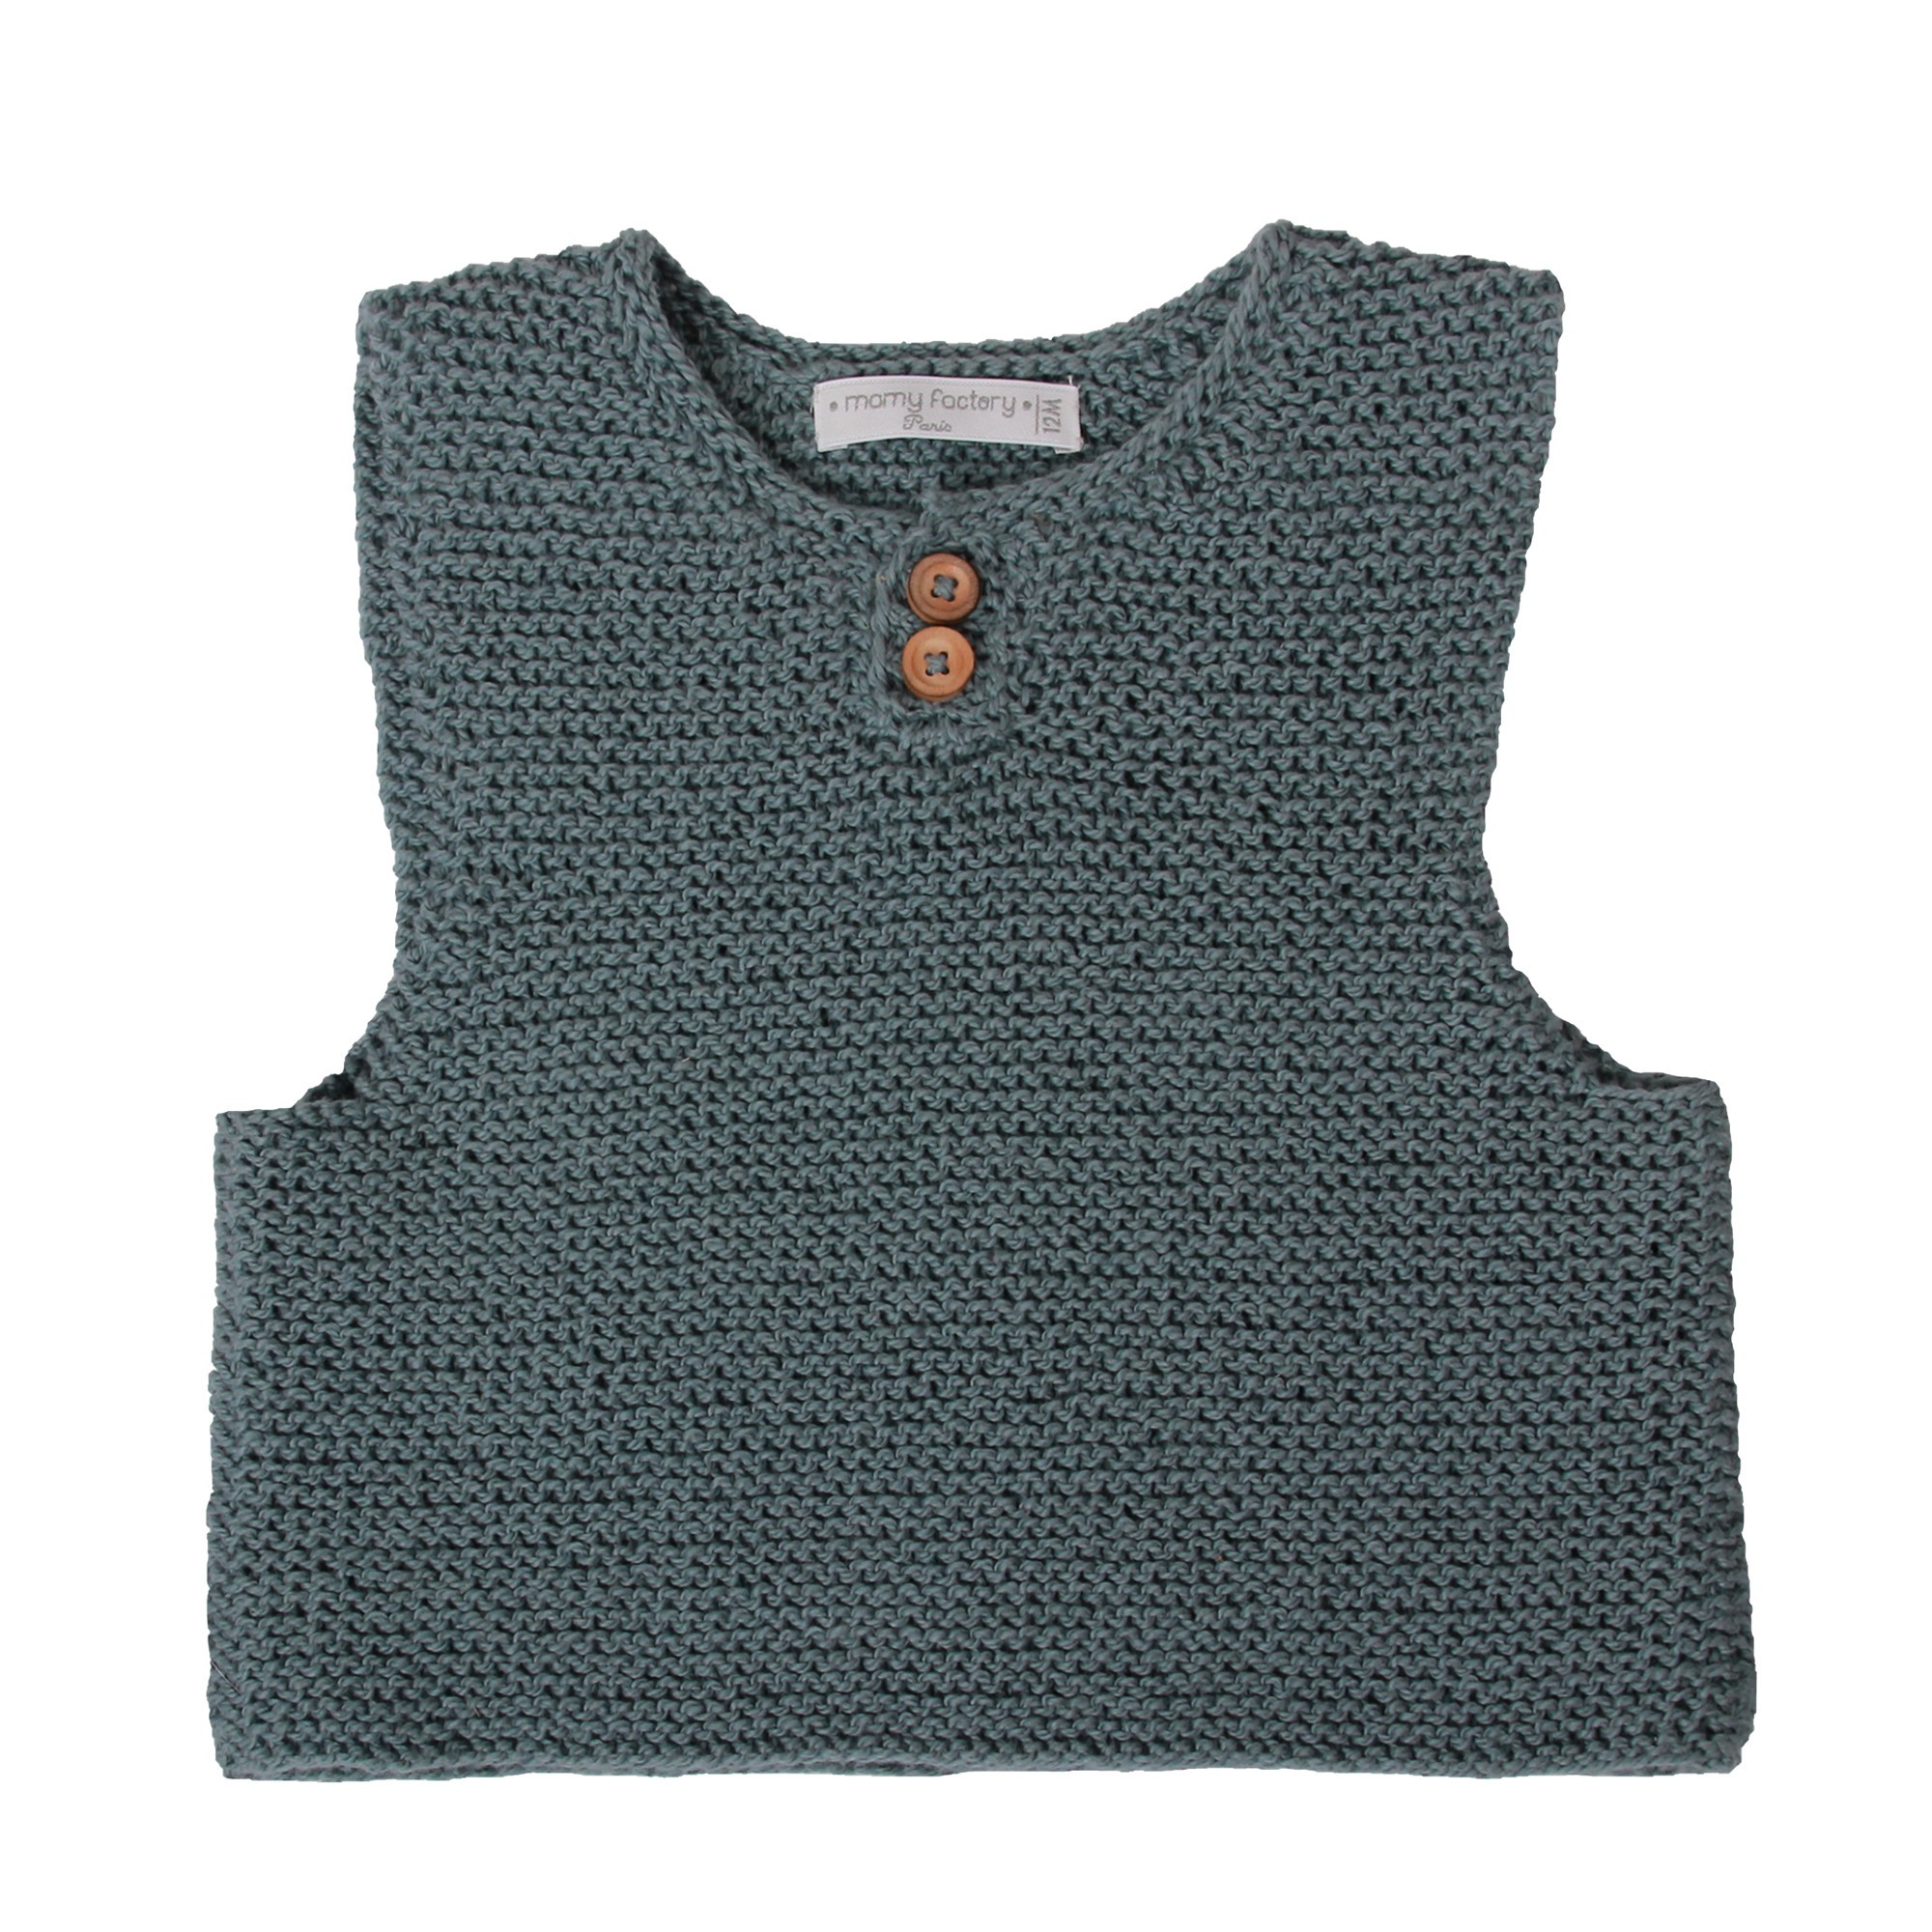 5a7b462f2f Little jade tank top jumper for baby   kid. Hand knitted from cotton